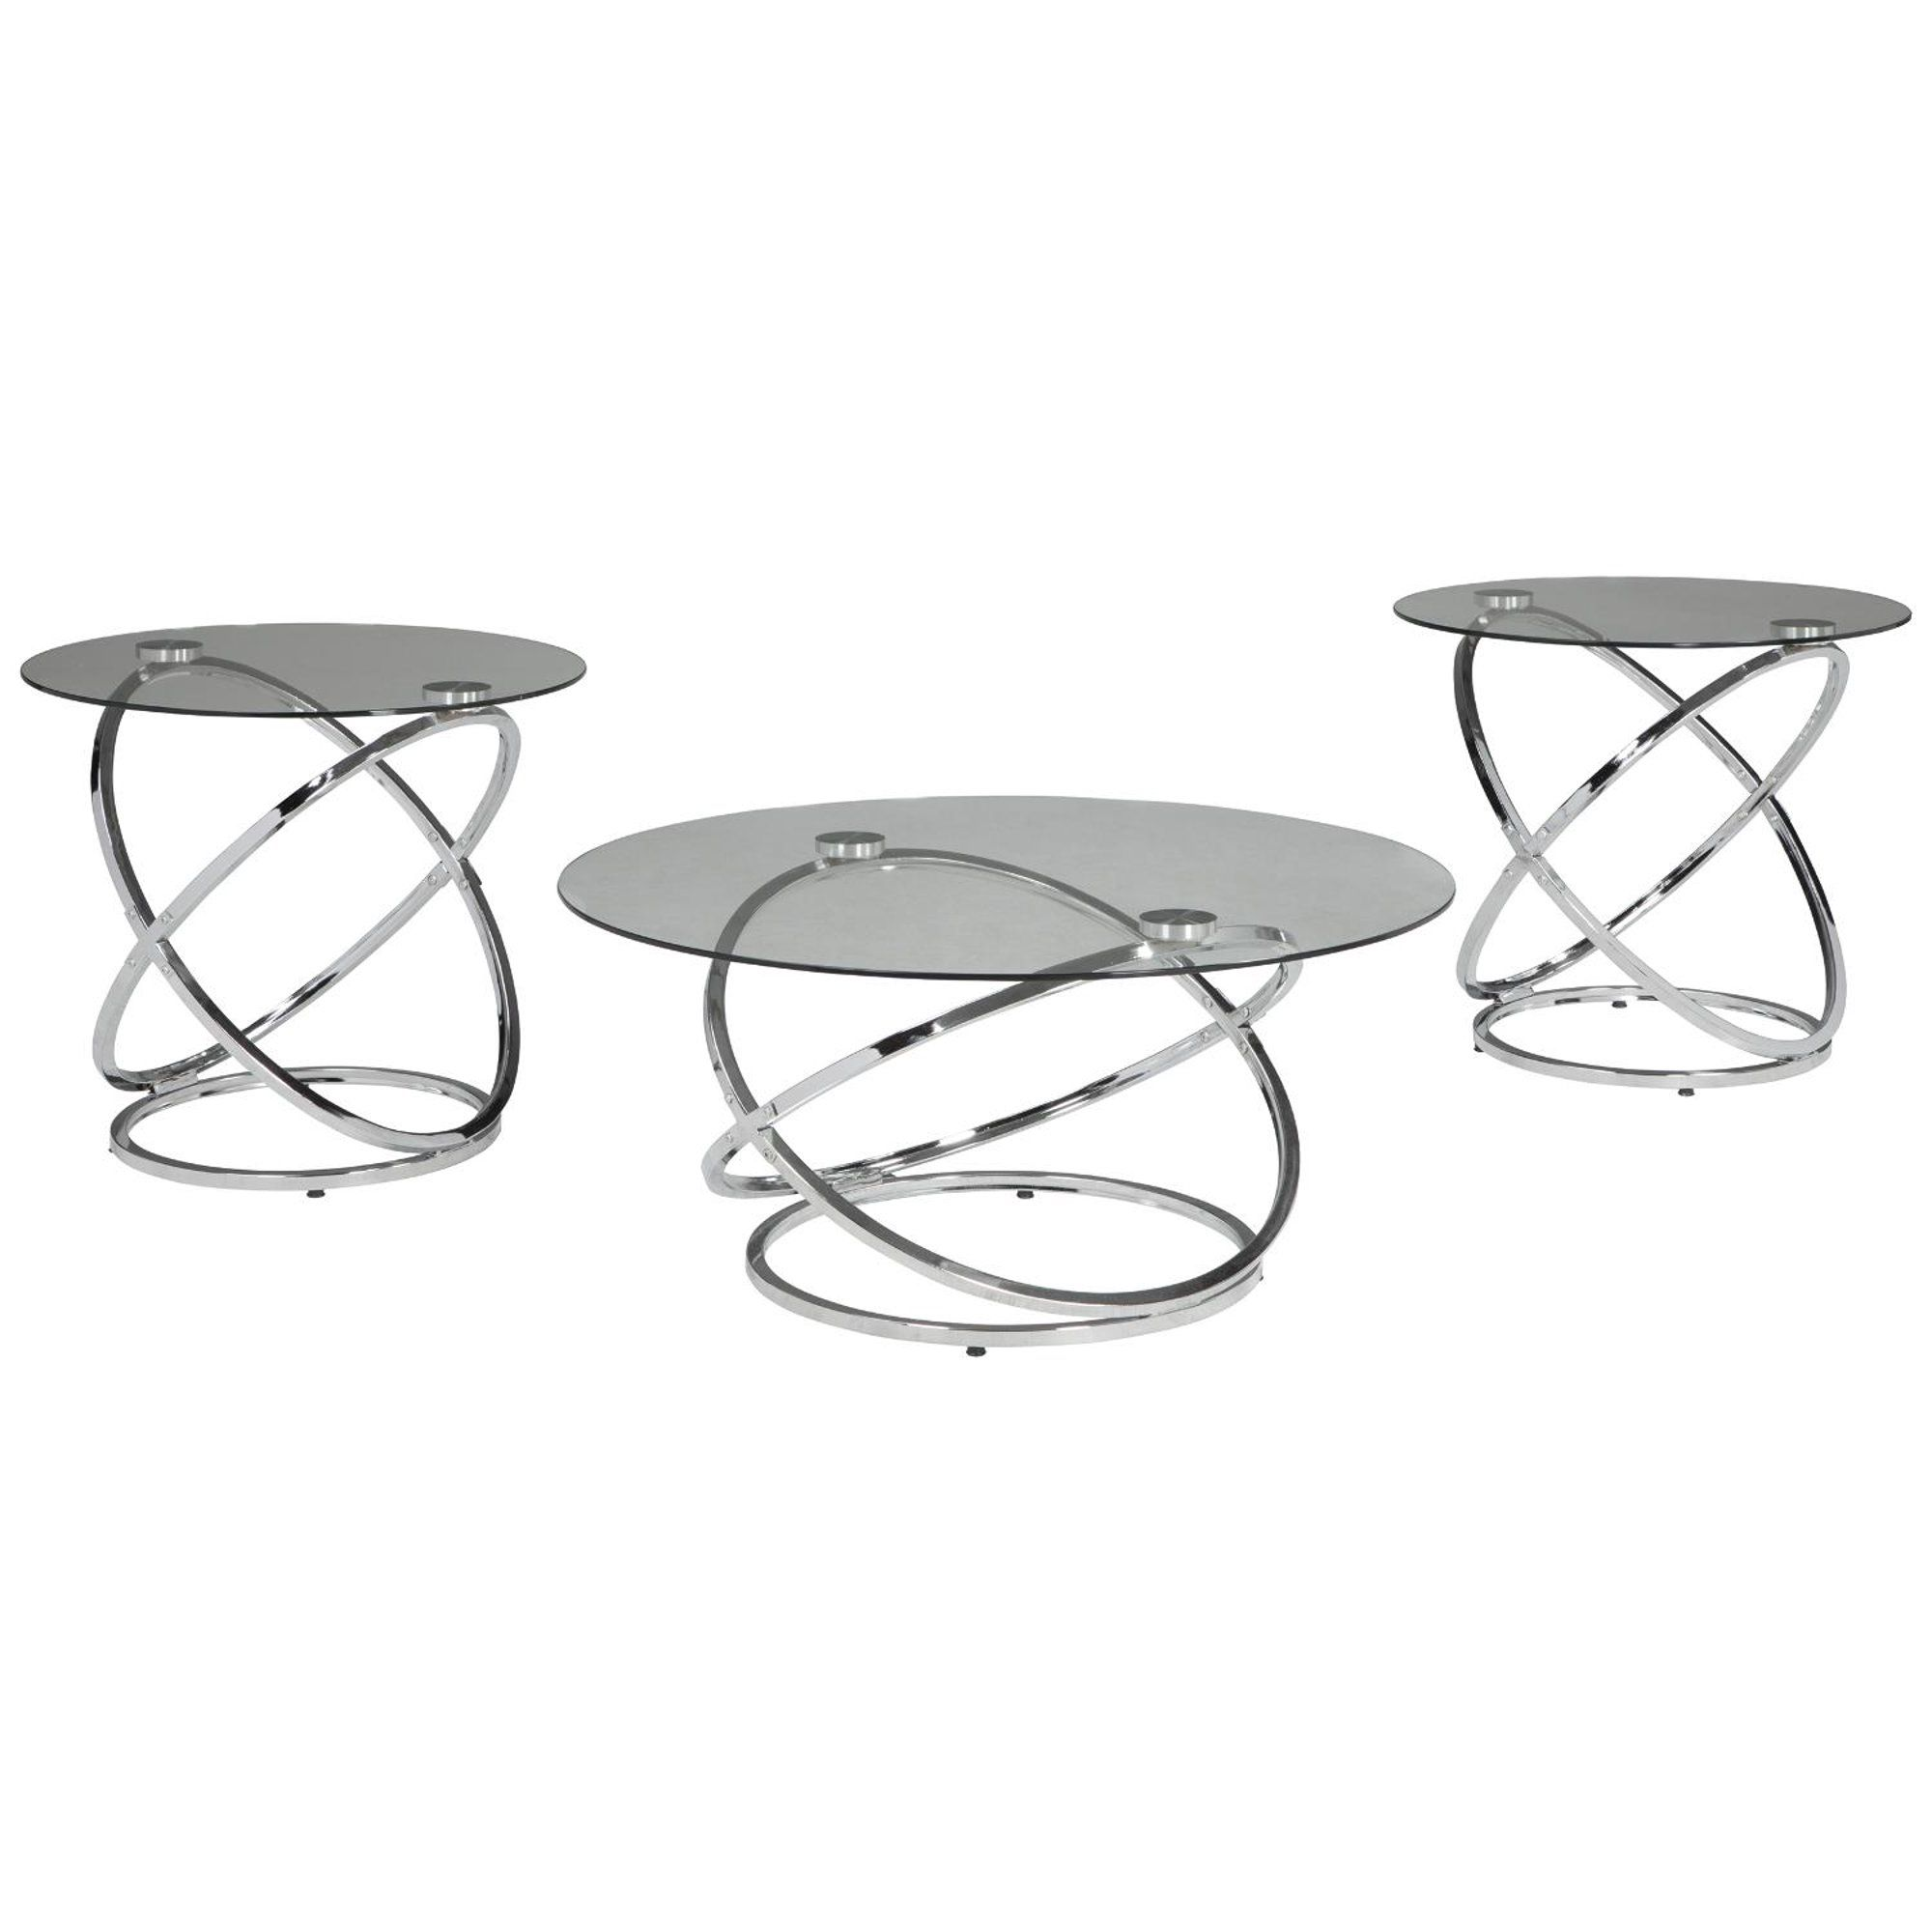 Signature Design By Ashley Hollynyx Living Room Table Set Walmart Com In 2021 3 Piece Coffee Table Set Coffee Table Setting Round Glass Coffee Table [ 2000 x 2000 Pixel ]